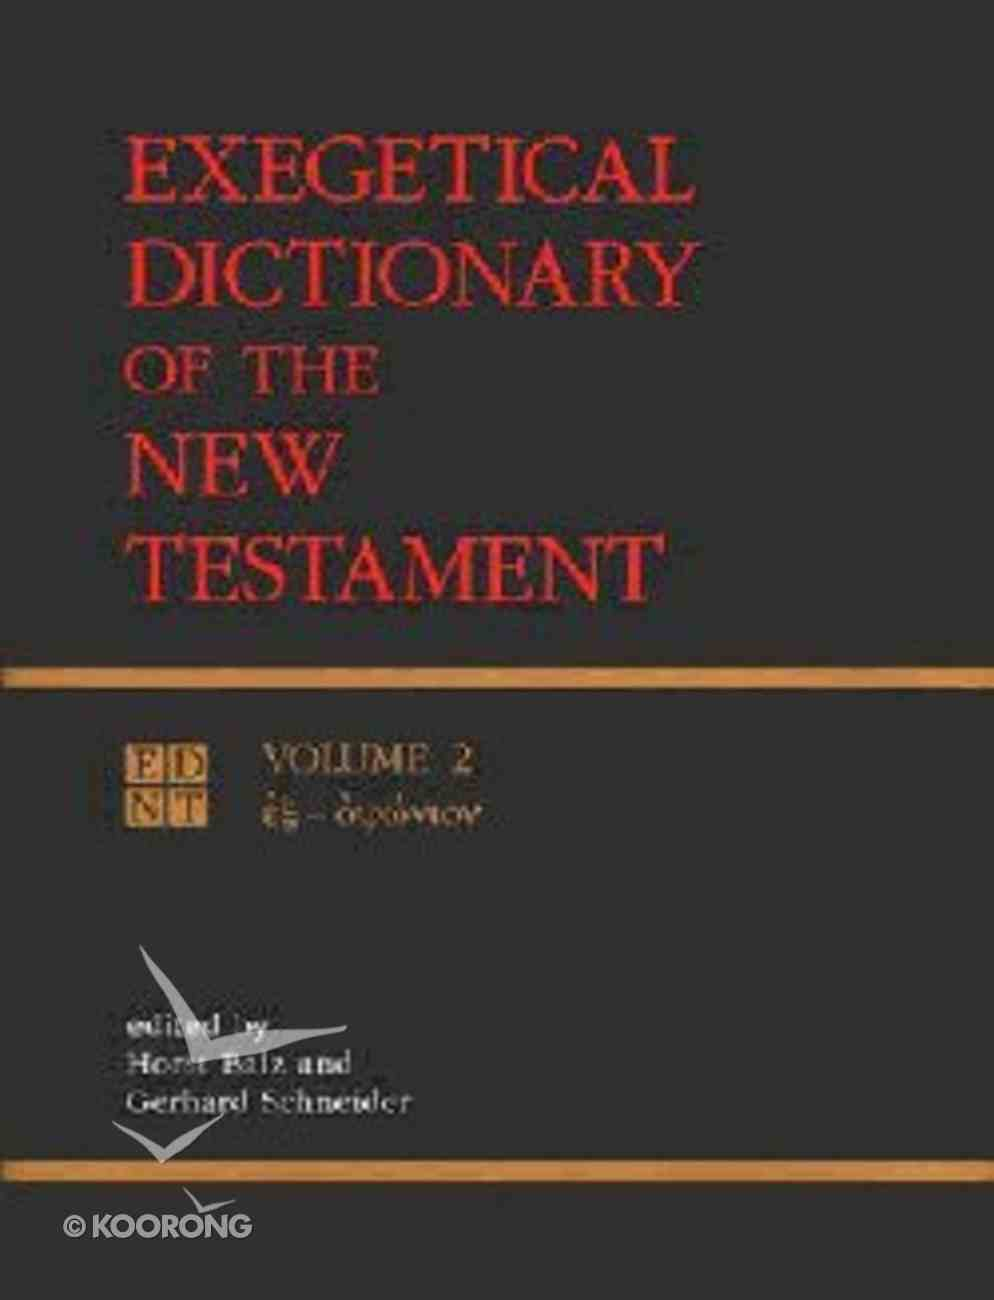 Exegetical Dictionary of the New Testament (Volume 2) (#02 in Exegetical Dictionary Of The New Testament Series) Hardback